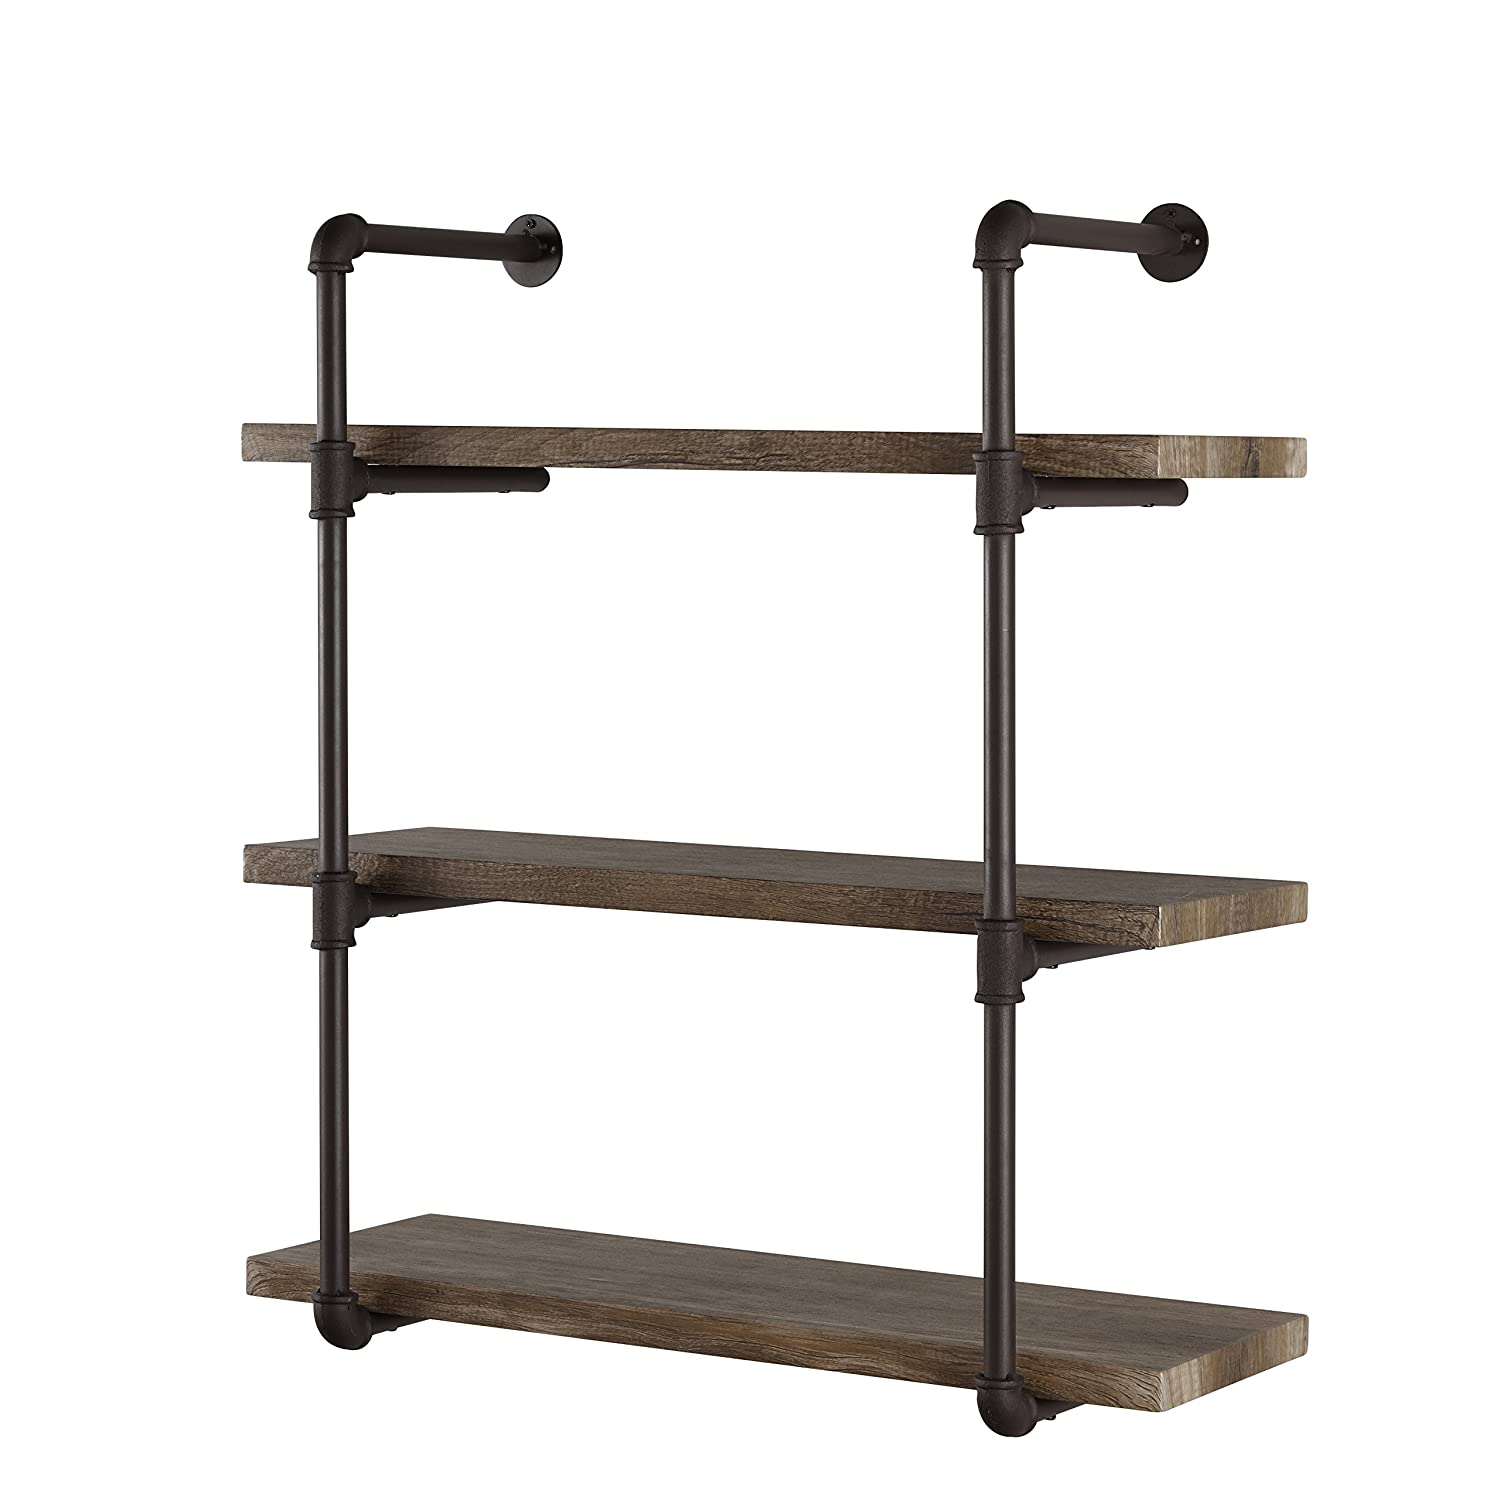 timeless design 93aa2 40886 Decorative Floating 3-Tier Wall Mounted Hanging Pipe Shelves - Rustic,  Urban and Industrial Décor - Perfect for The Living Room, Dining Room,  Kitchen, ...